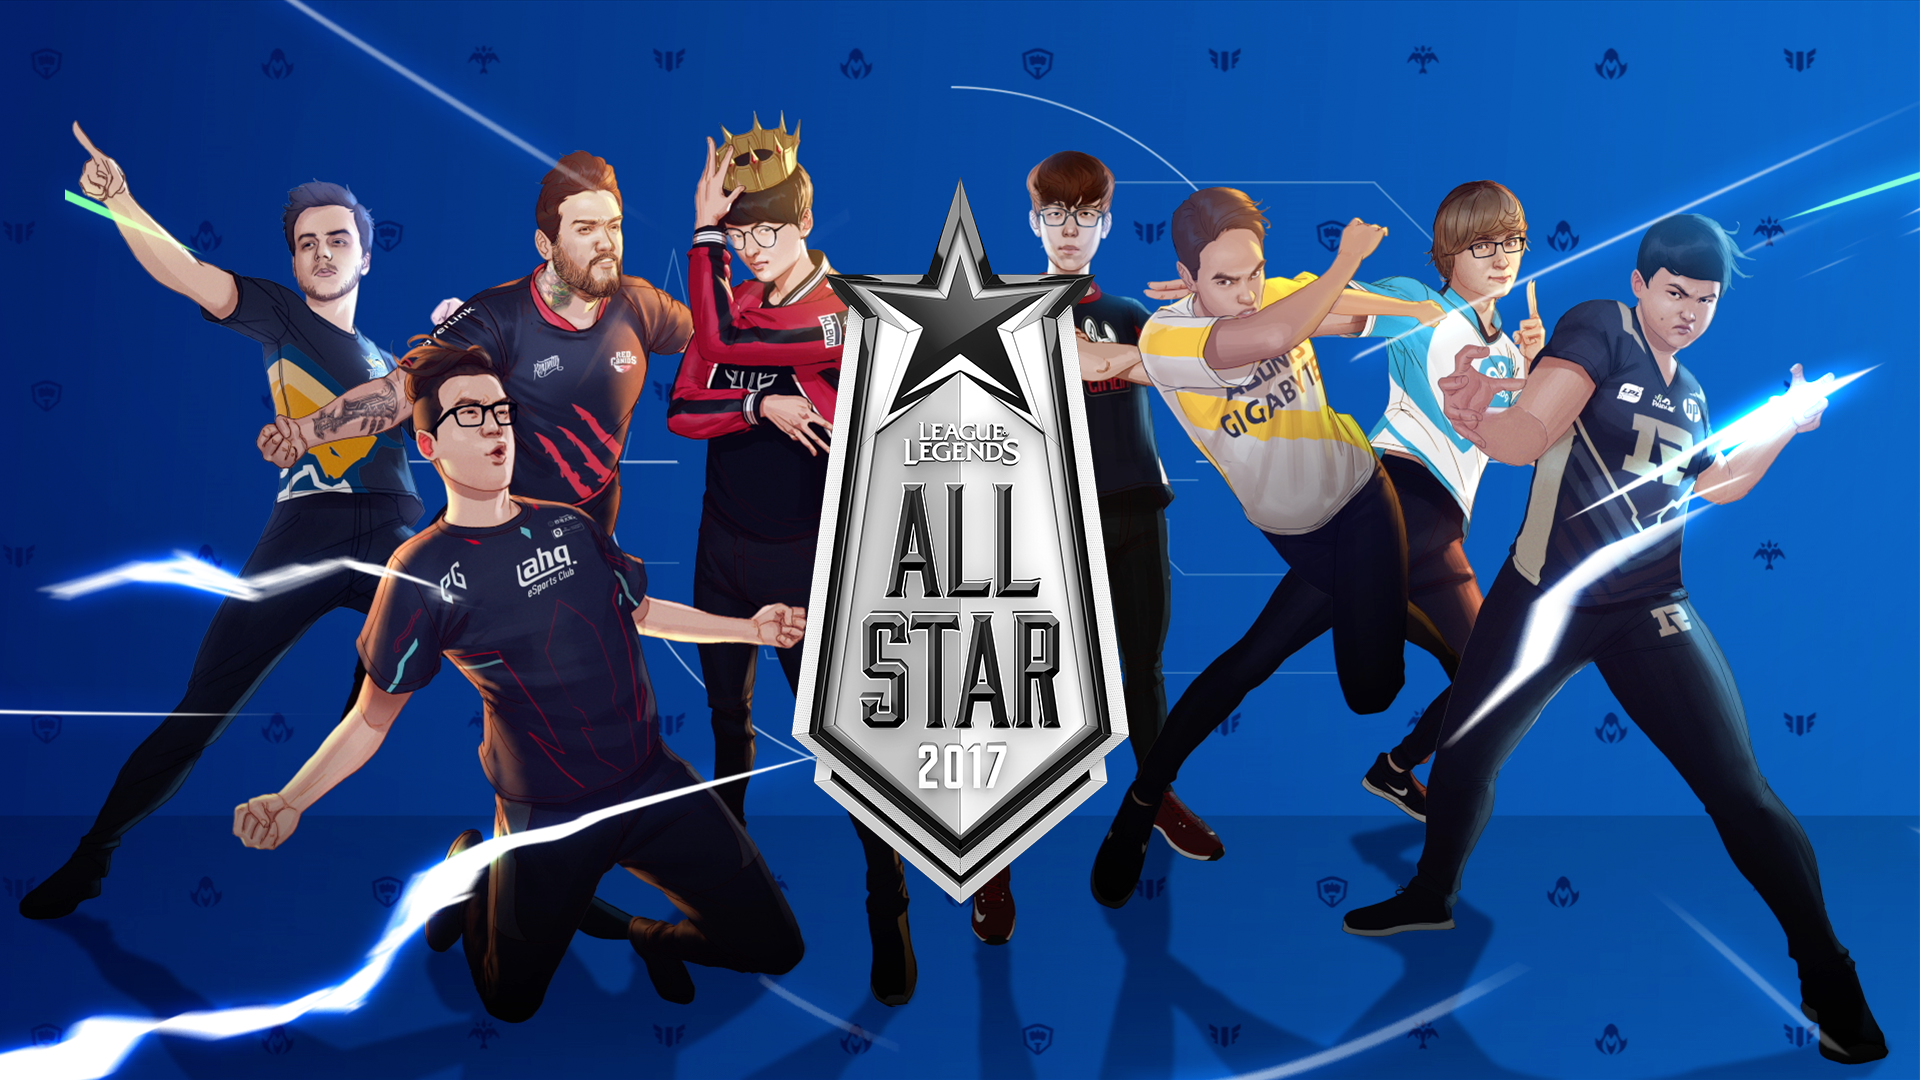 Fondos De Pantalla All Star 2017 League Of Legends